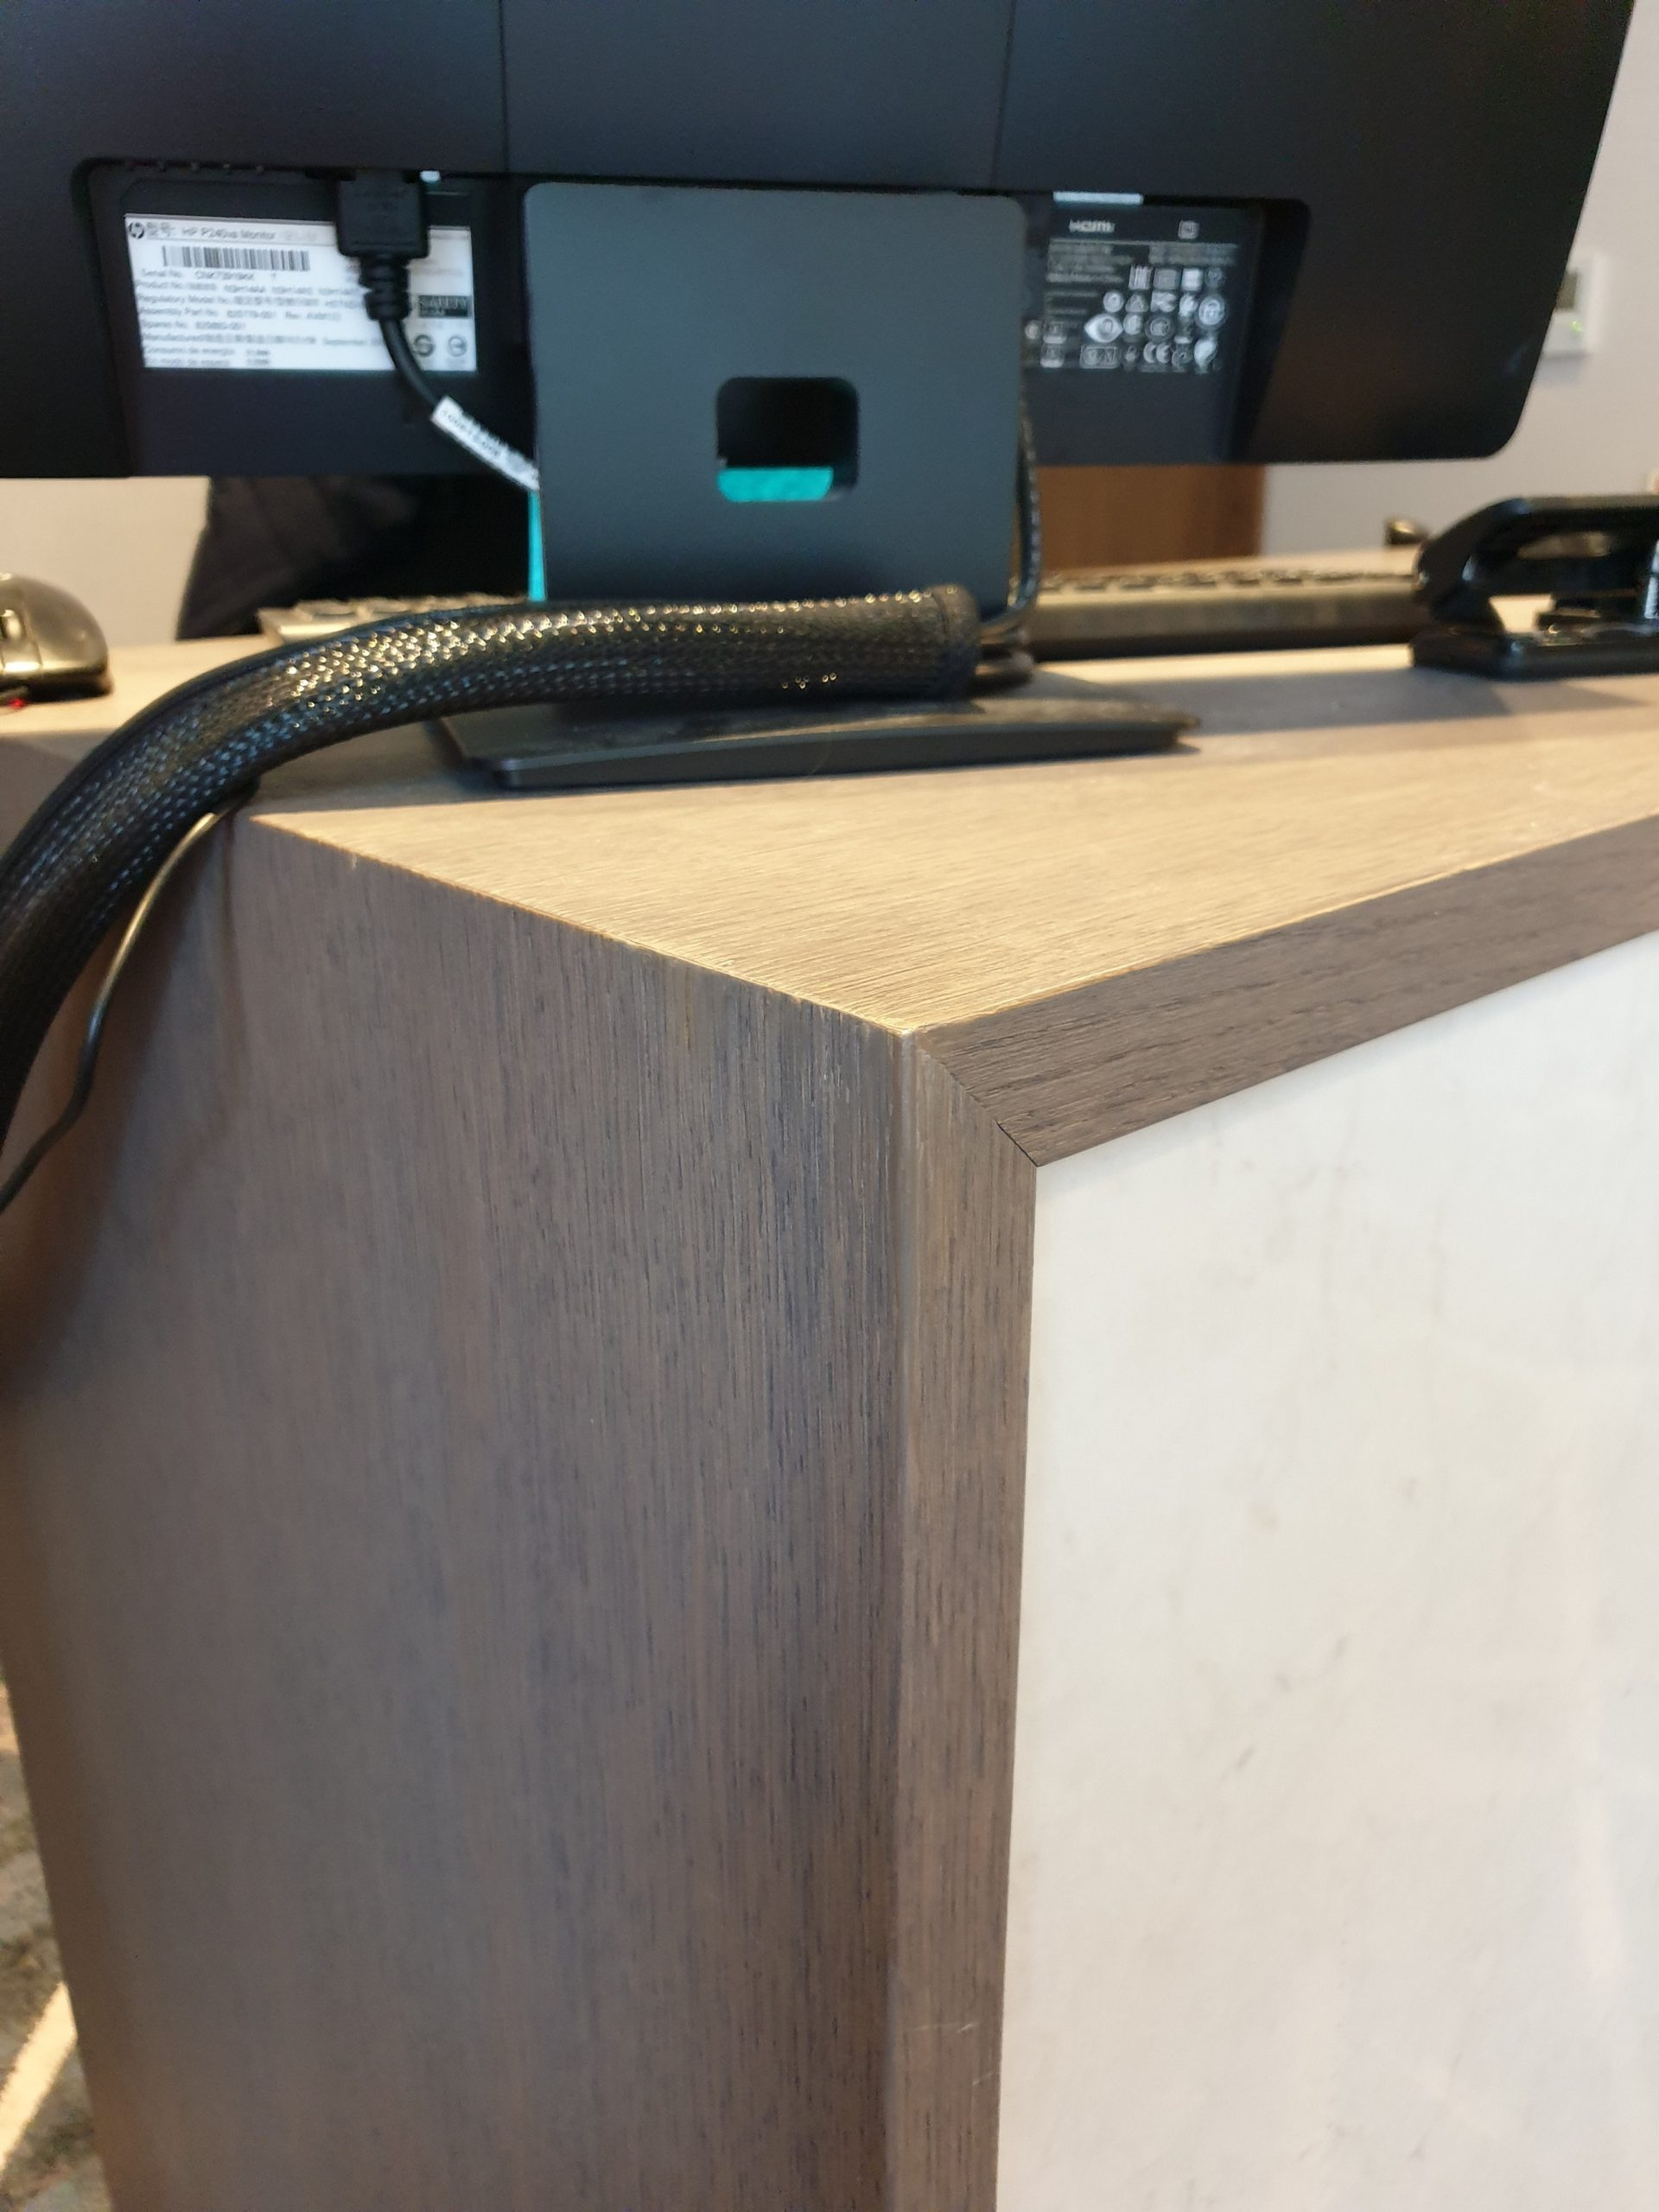 HOTEL RECEPTION COUNTER CHIP SCRATCH REPAIR AFTER